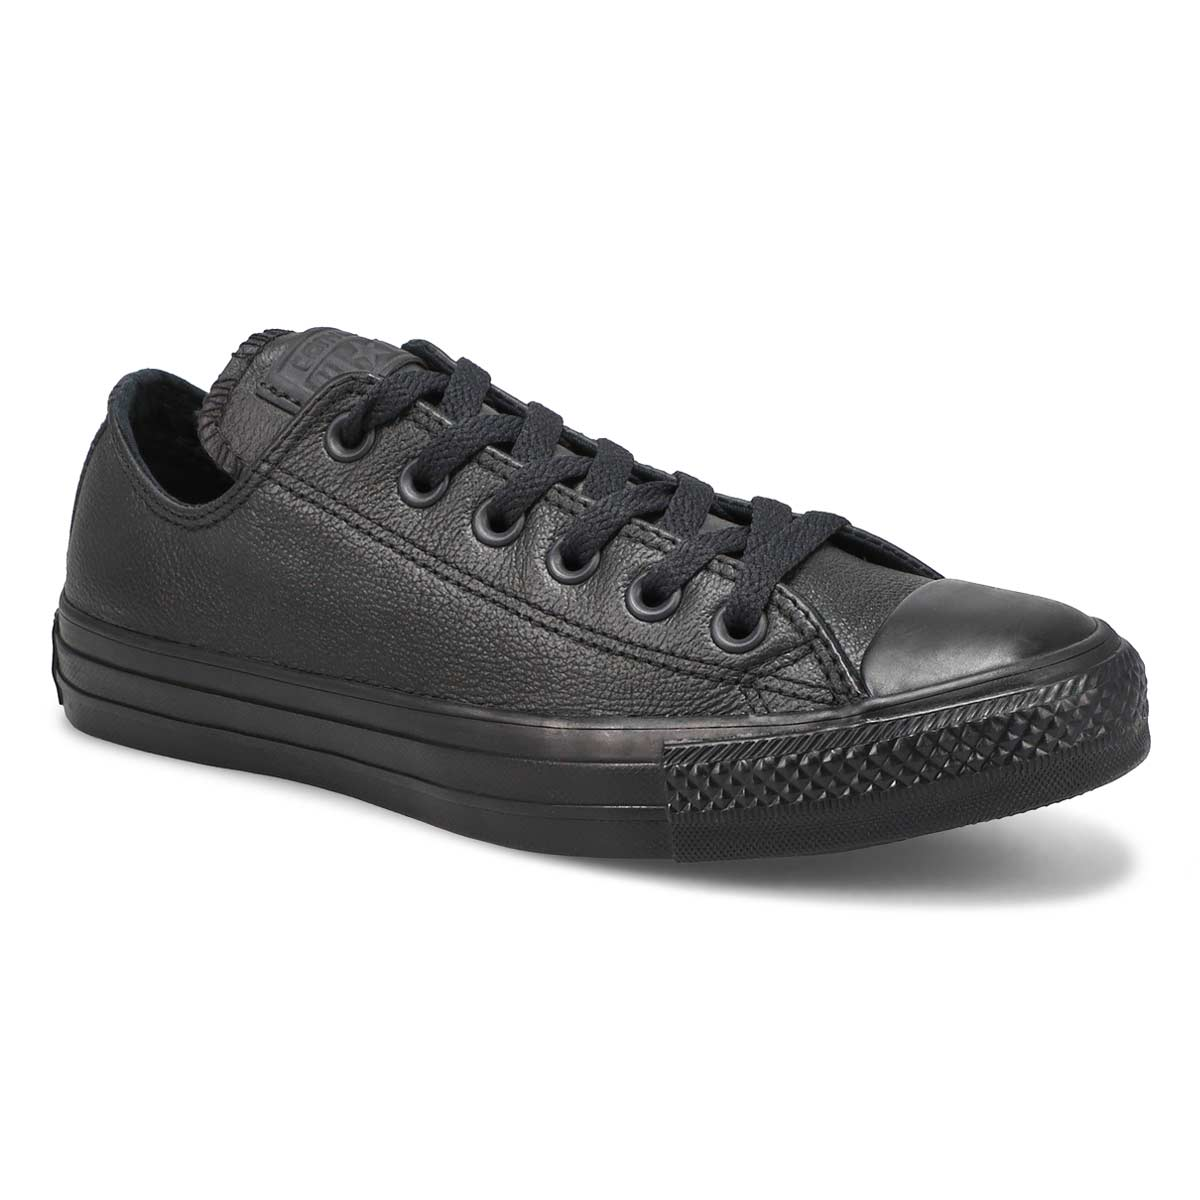 Espadrille CT All Star Leather, noir, fe